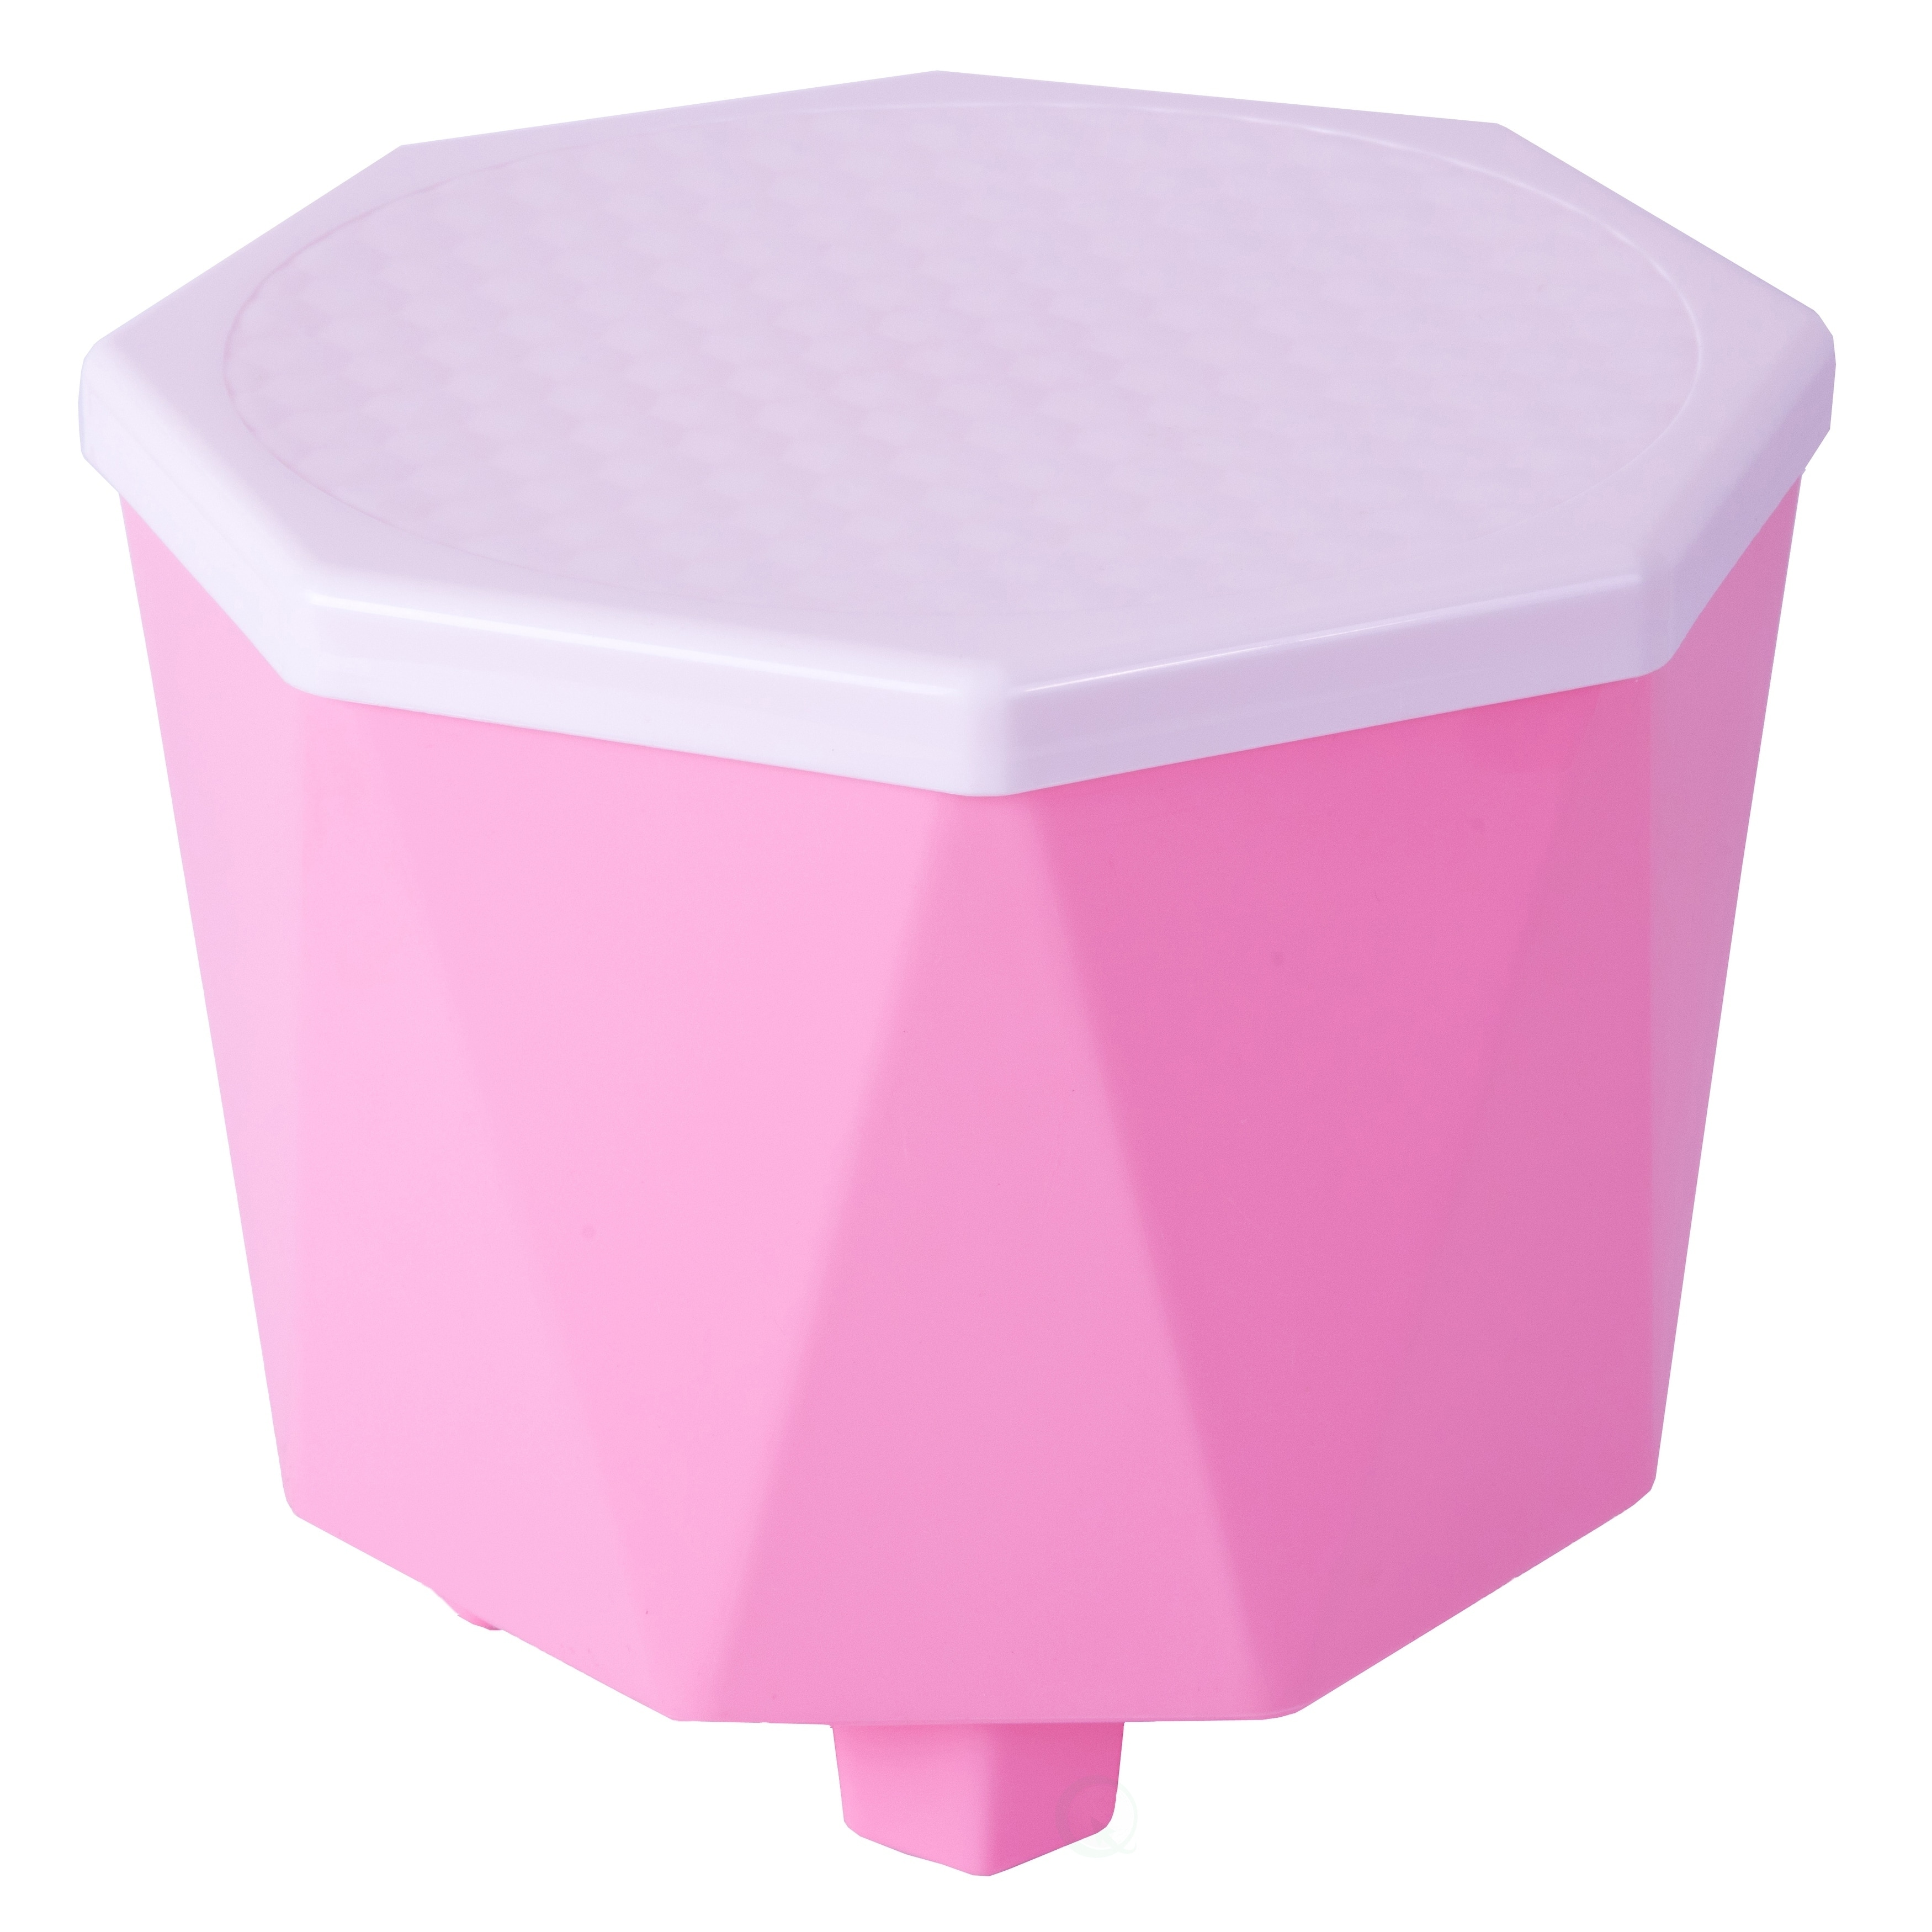 Groovy Plastic 2 In 1 Storage Step Stool Bralicious Painted Fabric Chair Ideas Braliciousco